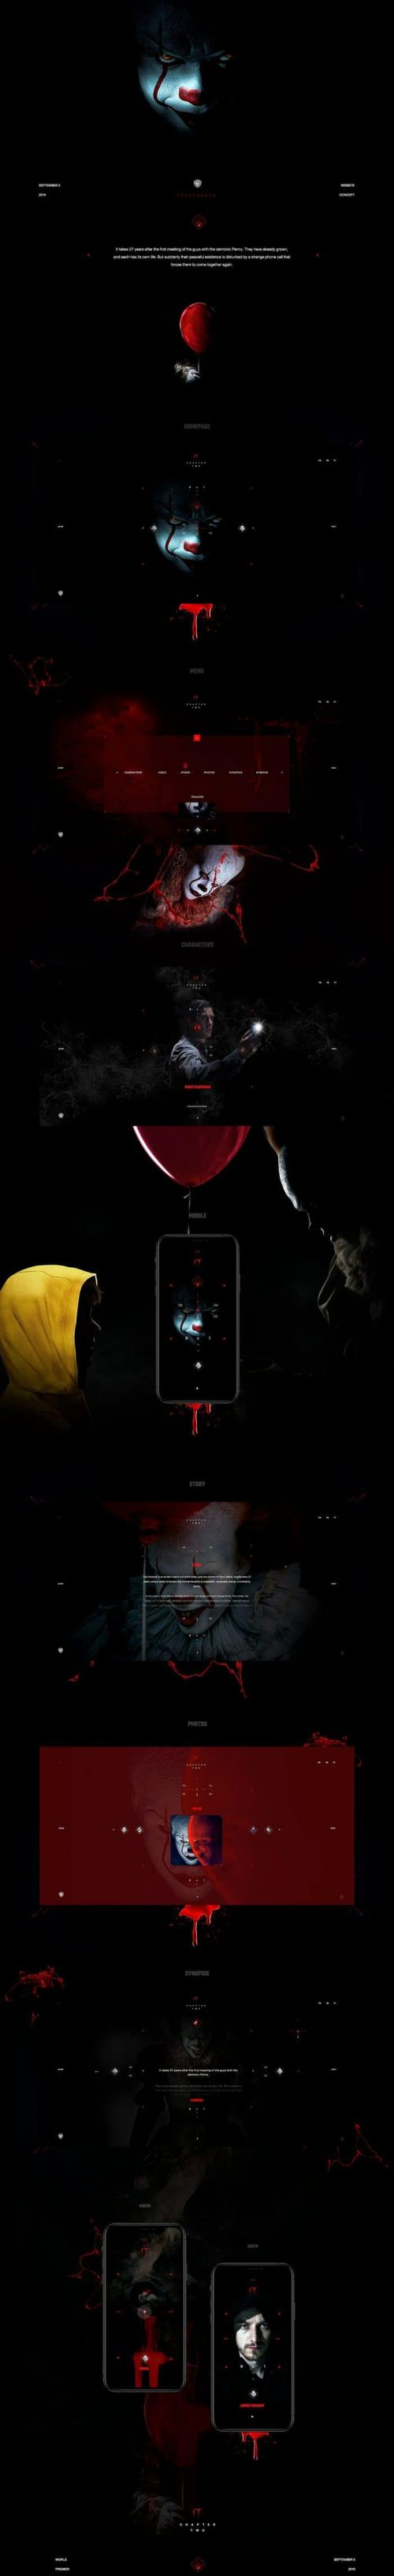 IT Chapter Two Mobile Interactive Design UI UX